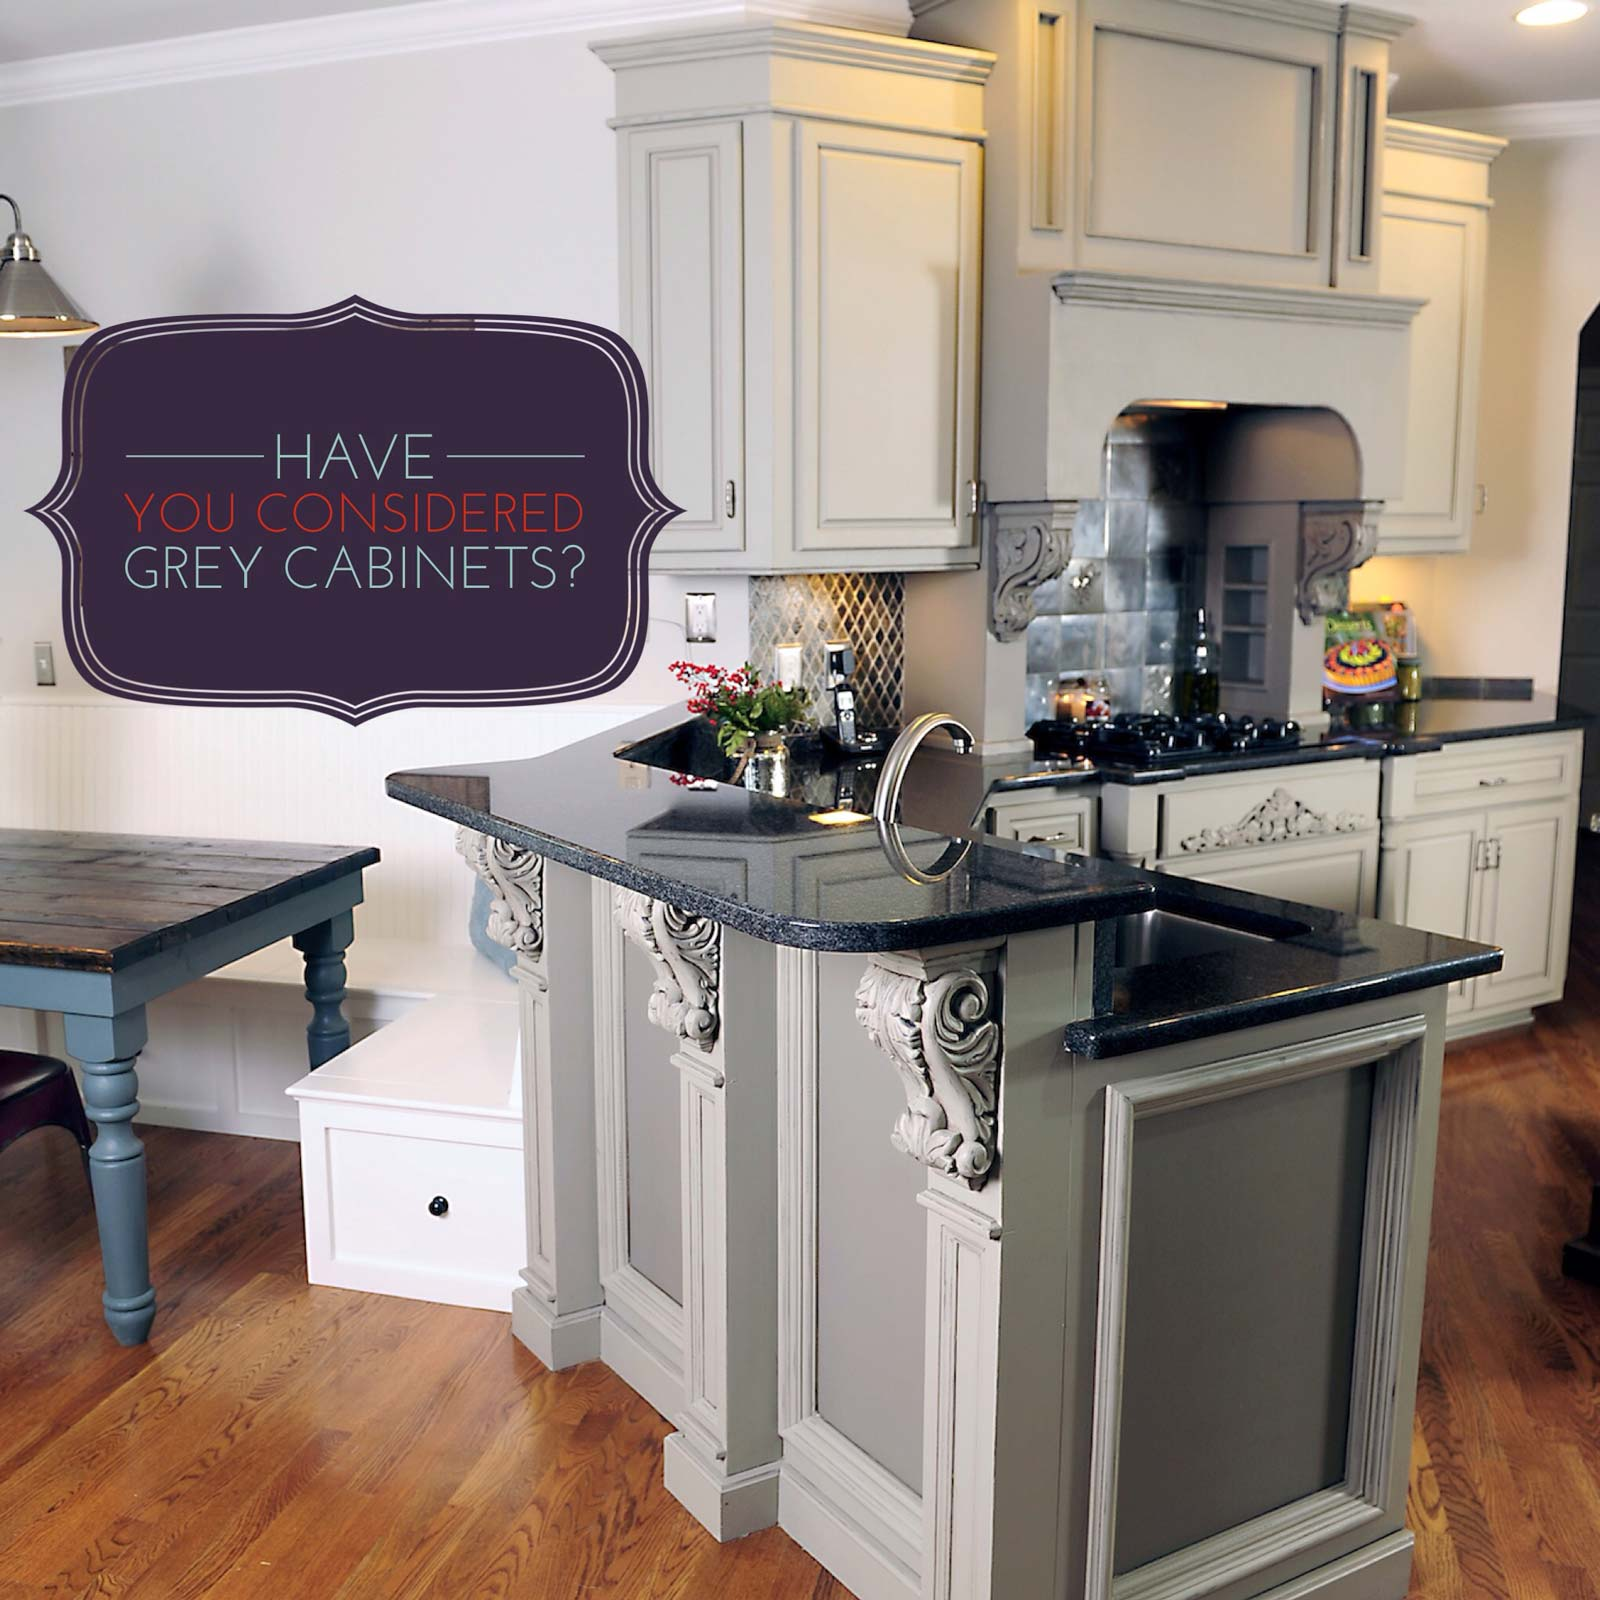 Grey Kitchen Units What Colour Walls: Have You Considered Grey Kitchen Cabinets?